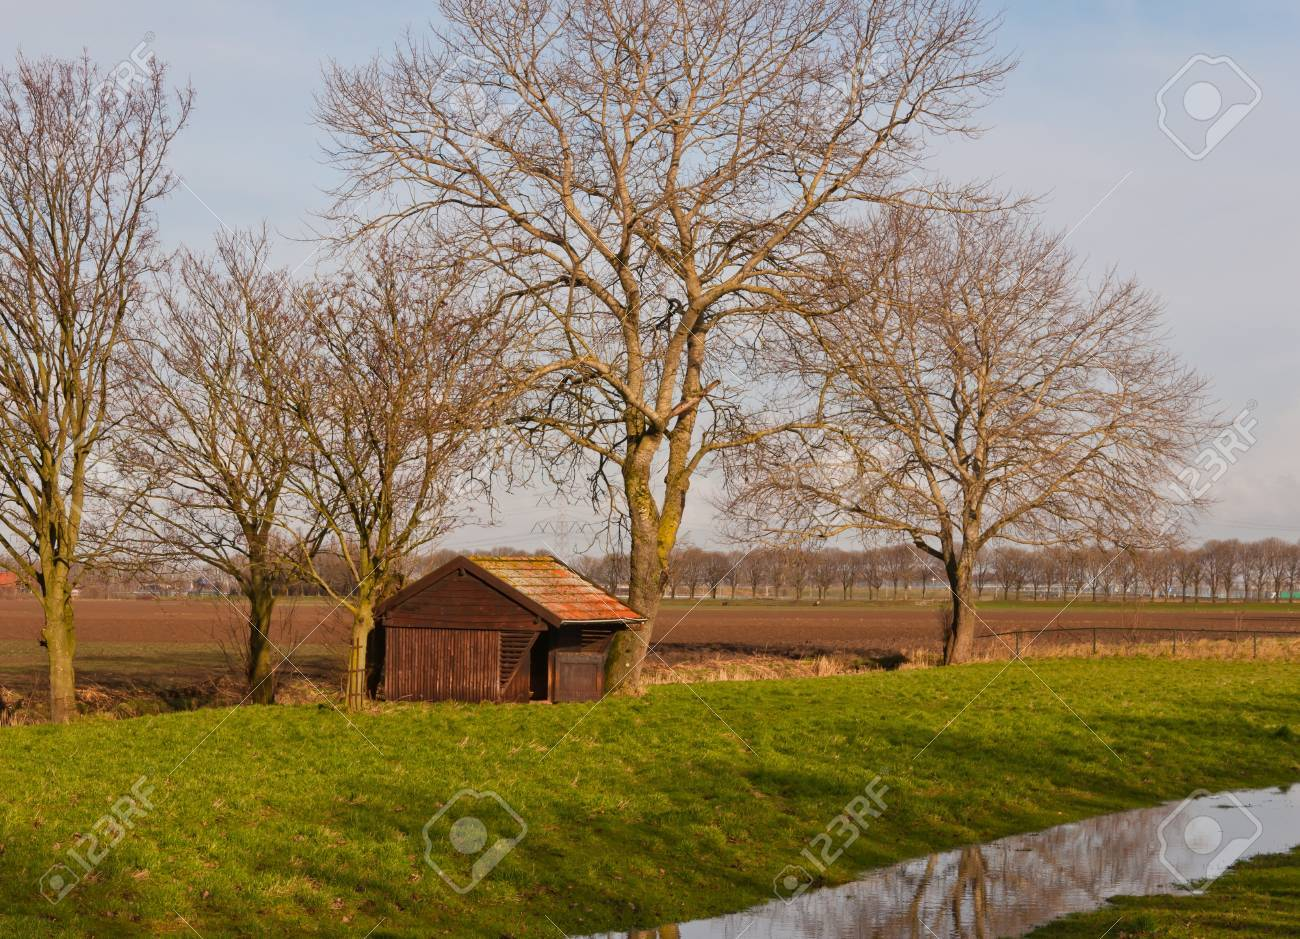 Landscape in the Netherlands with a small barn and trees reflected in the water surface of ditch. Stock Photo - 11768388